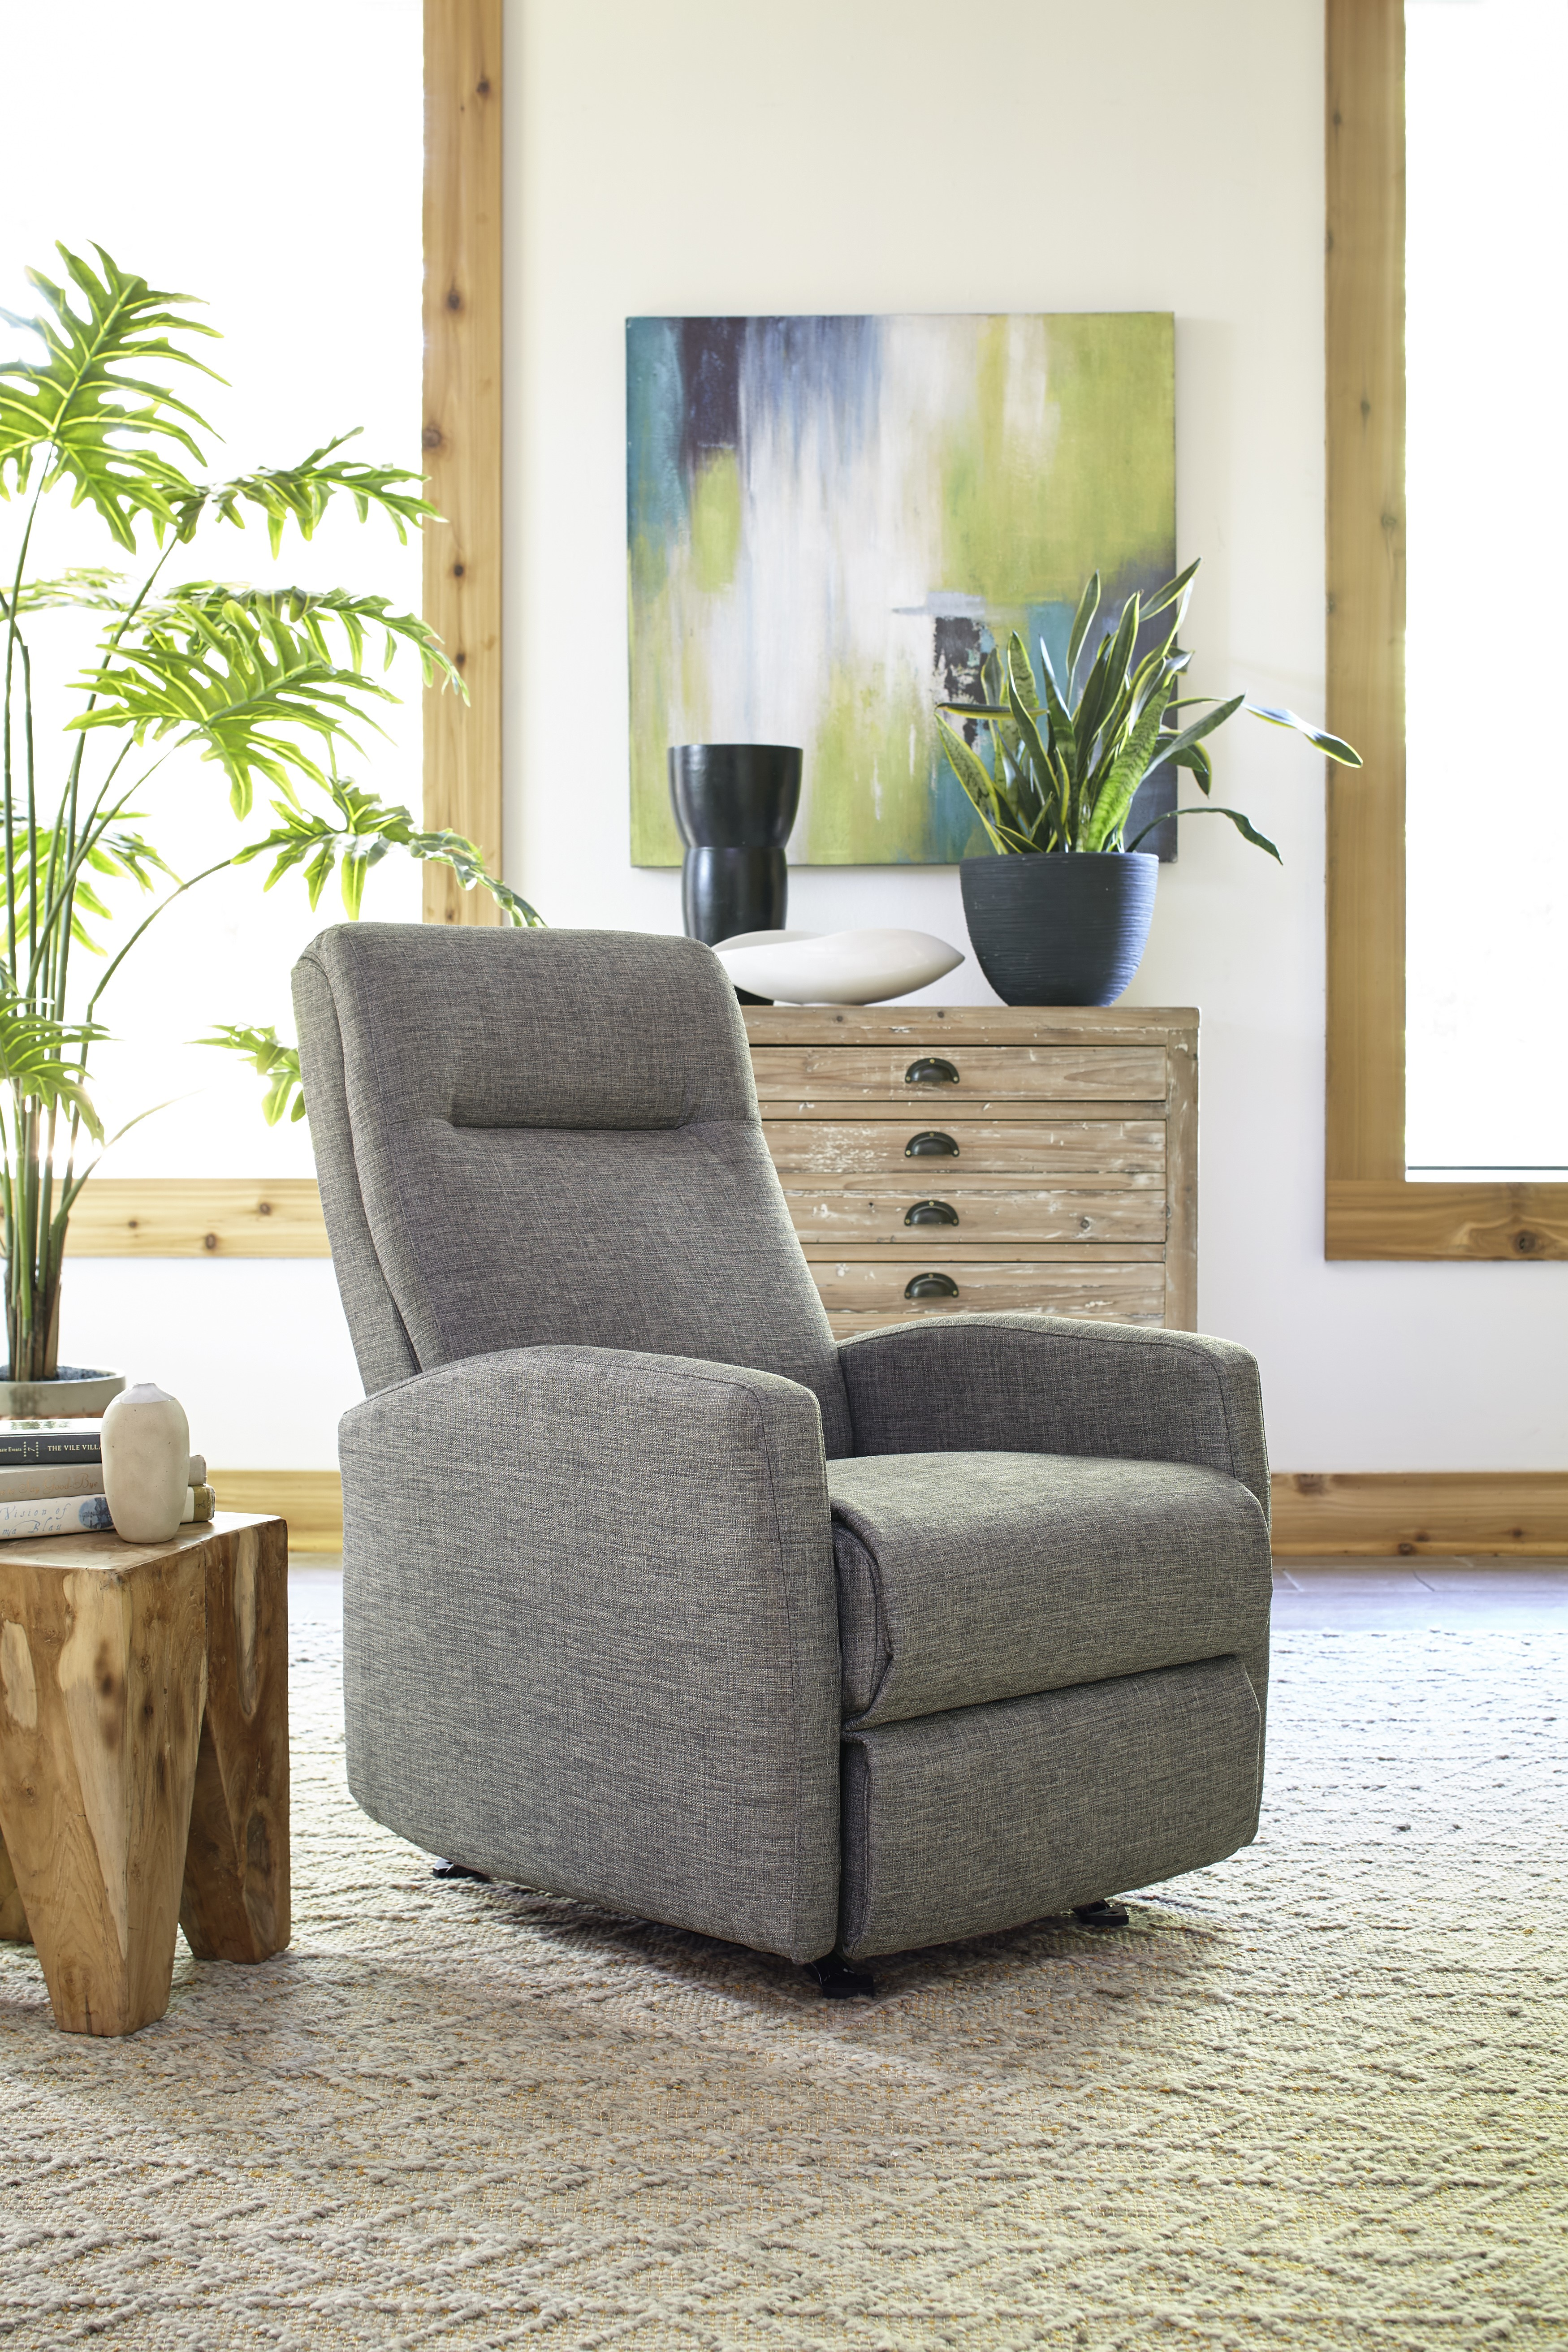 stylish recliners add to Living Room Furniture in Chattanooga TN